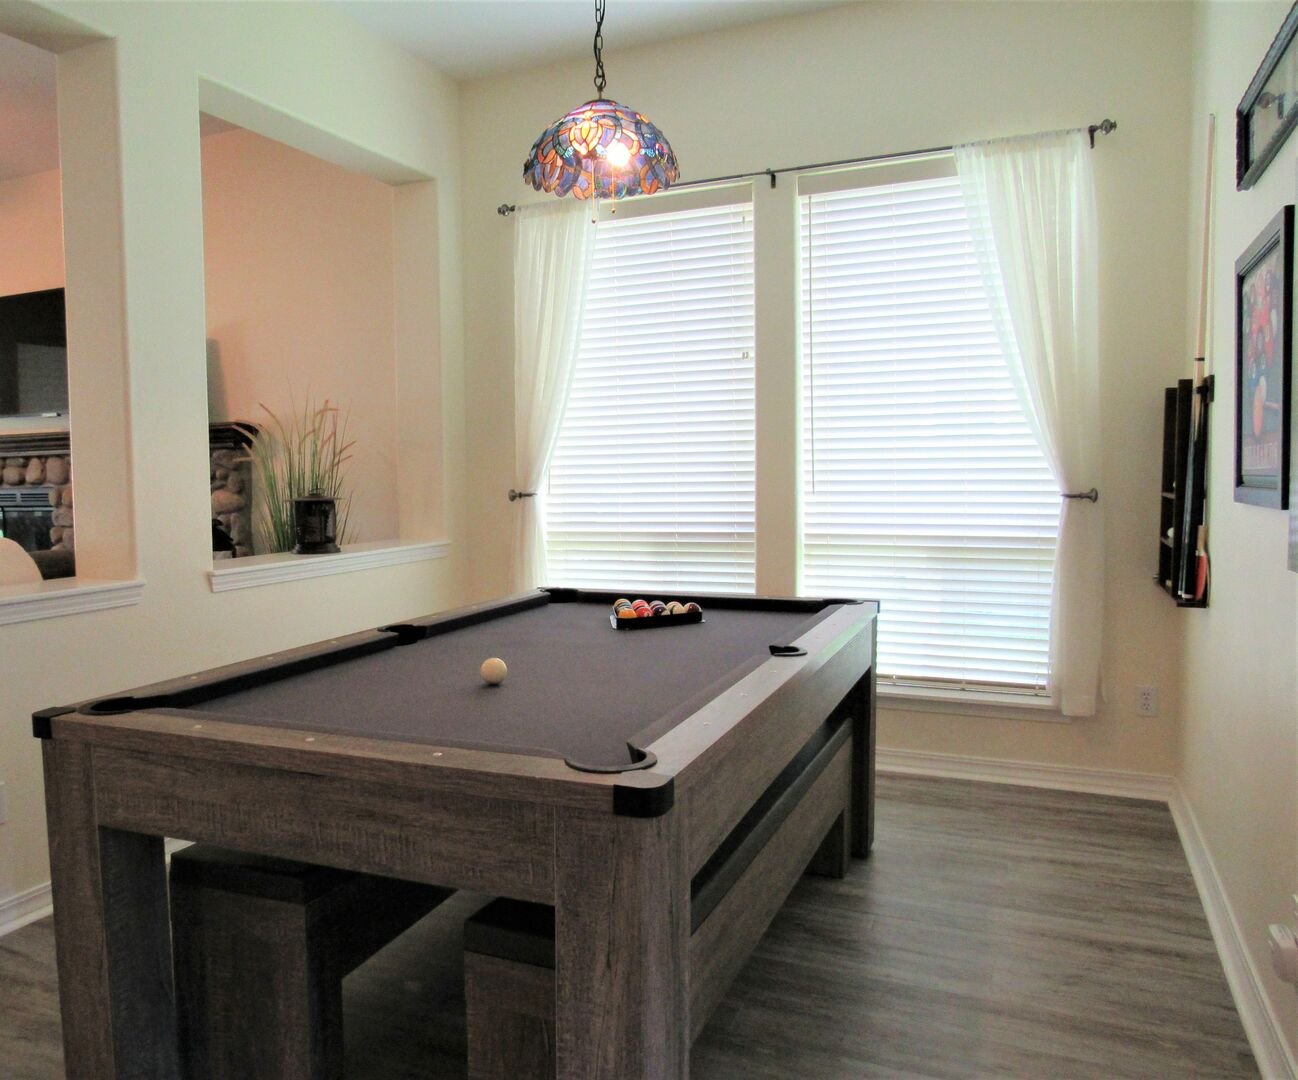 3-n-1 Ping pong, Pool, Card/Puzzle table